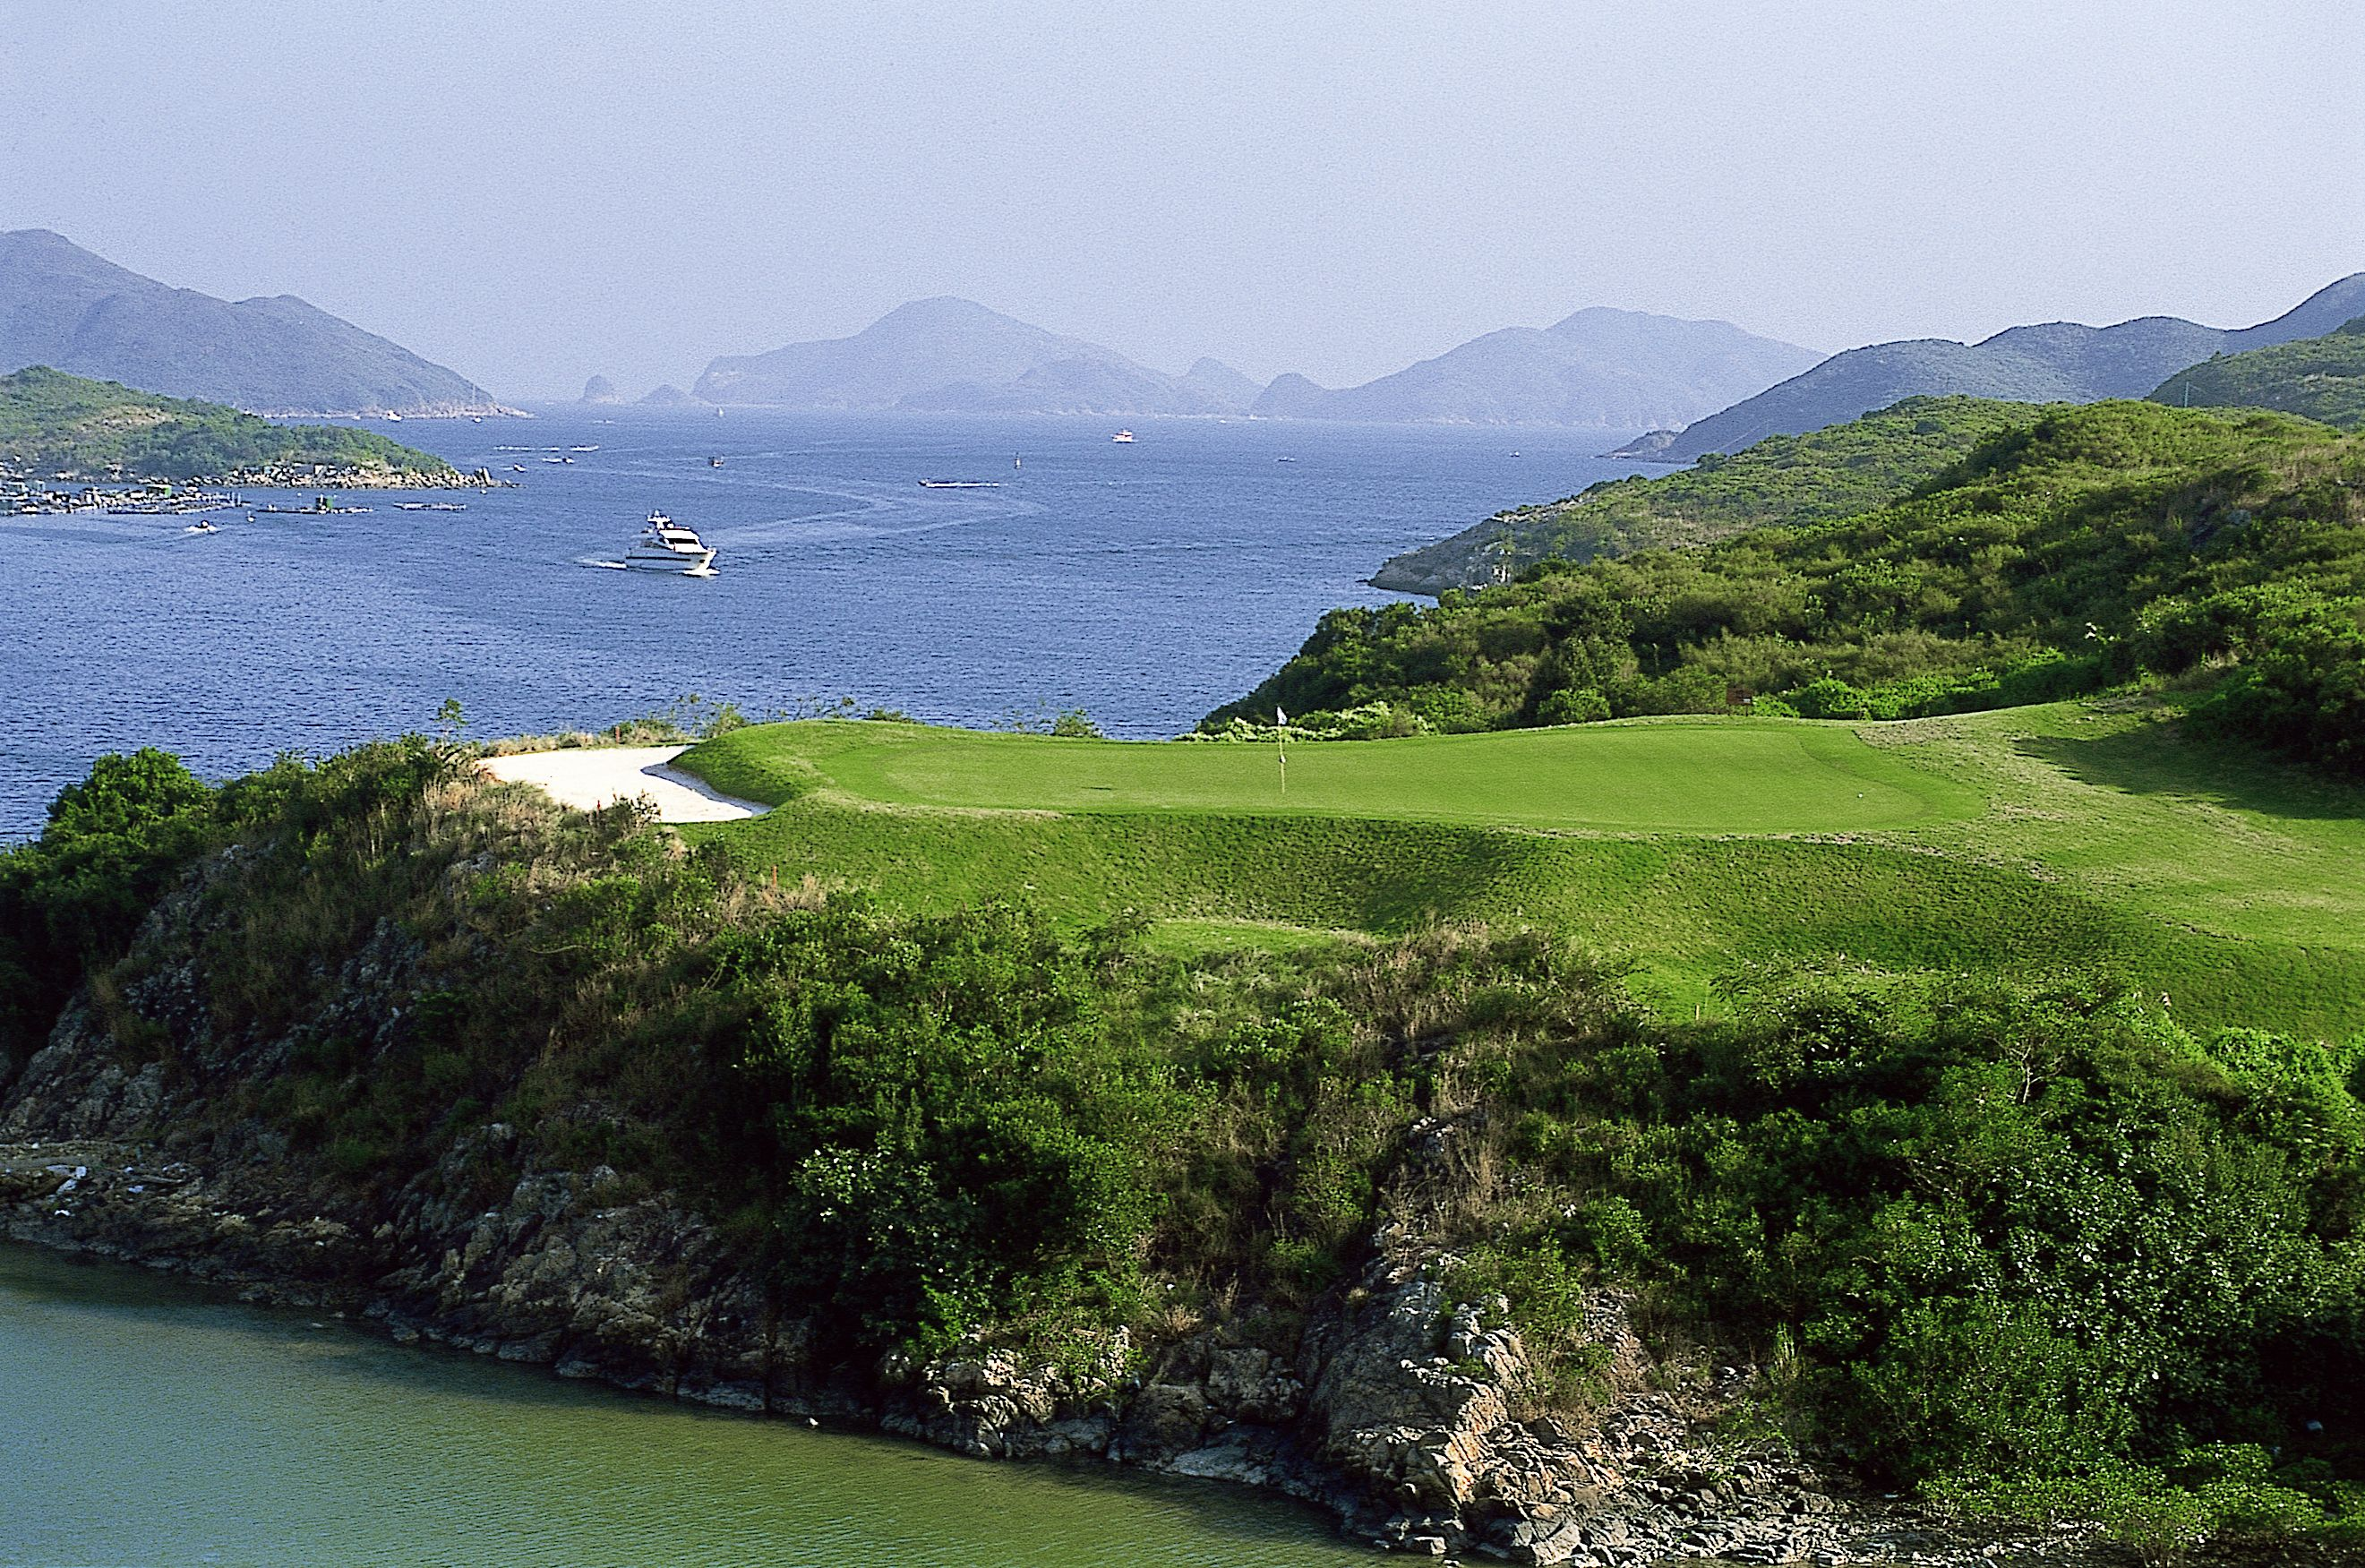 At Kau Sai Chau North Course, China's only public golf course, players enjoy magnificent views of the Sai Kung hills & sea framed landscapes.